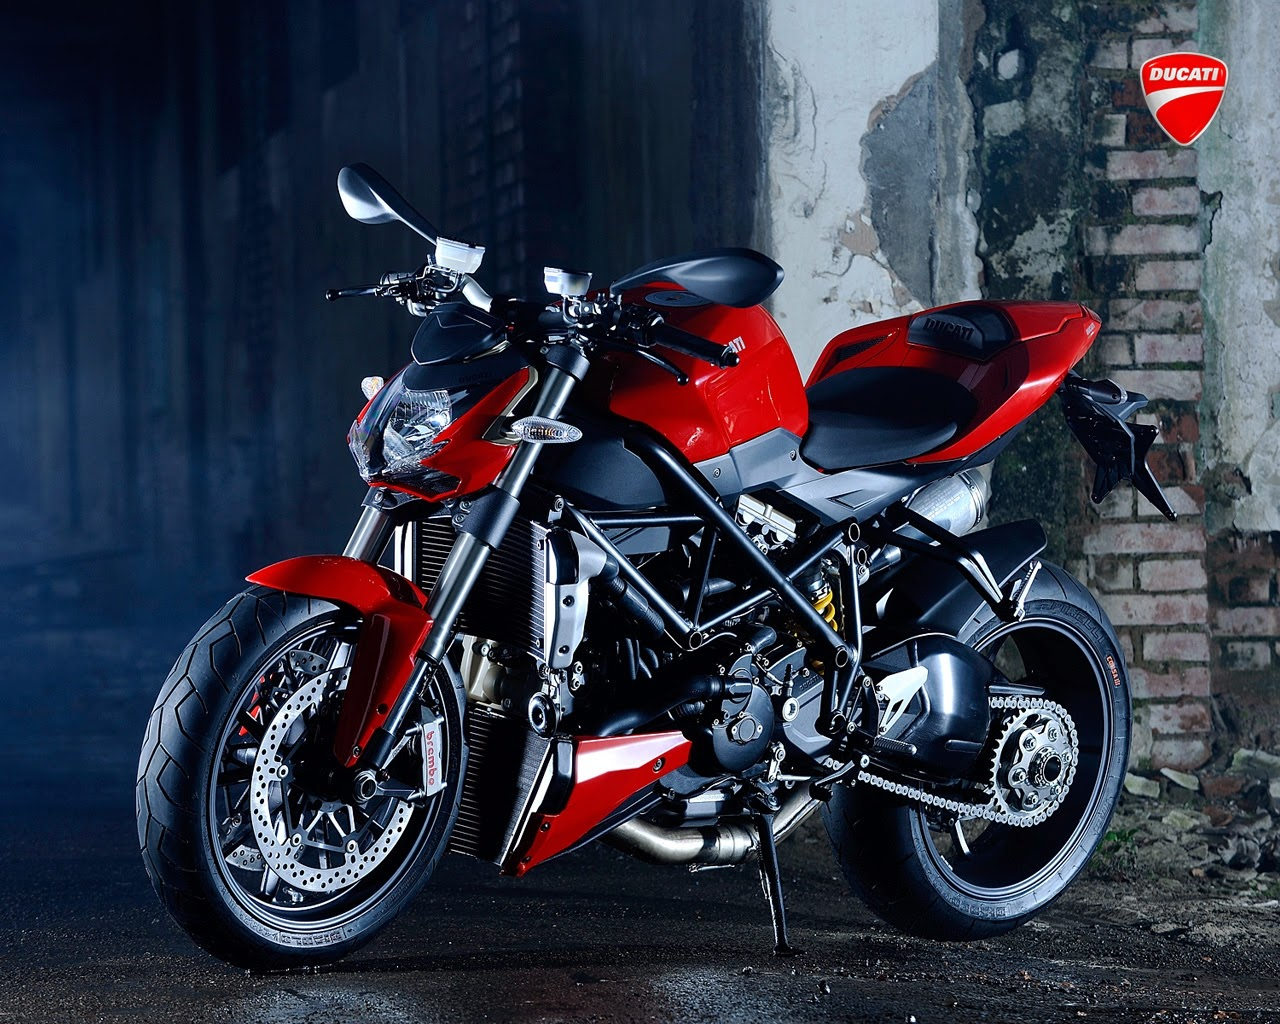 Ducati Streetfigther 848 Upcoming Models